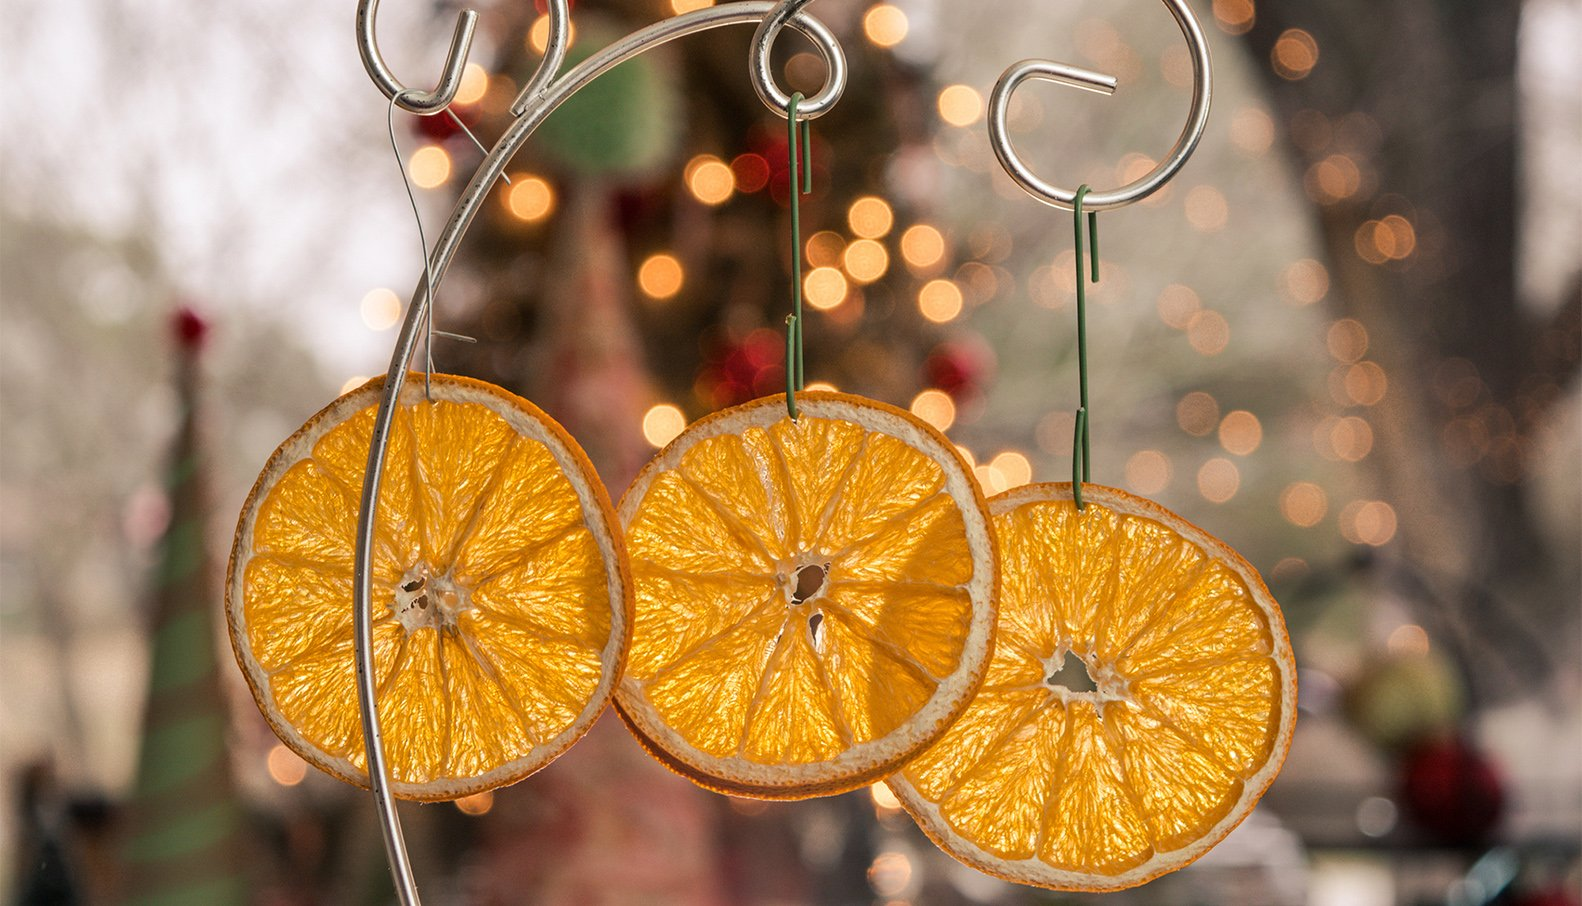 How To Make A Dried Fruit Christmas Garland Healthy Blog